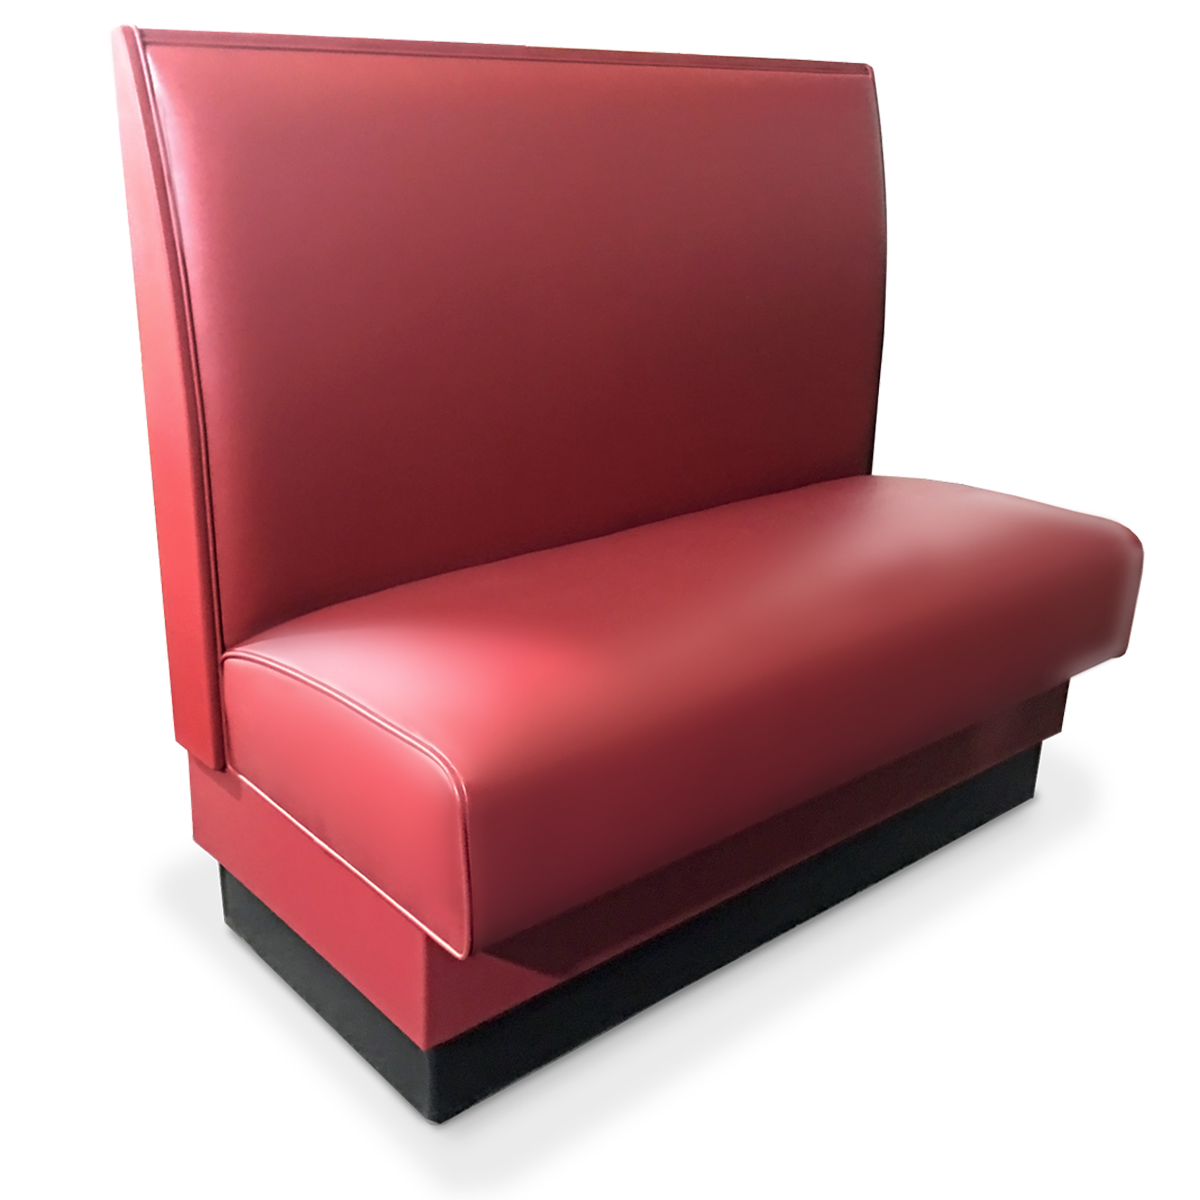 36 Upholstered Spring Seat Single Booth | Millennium Seating